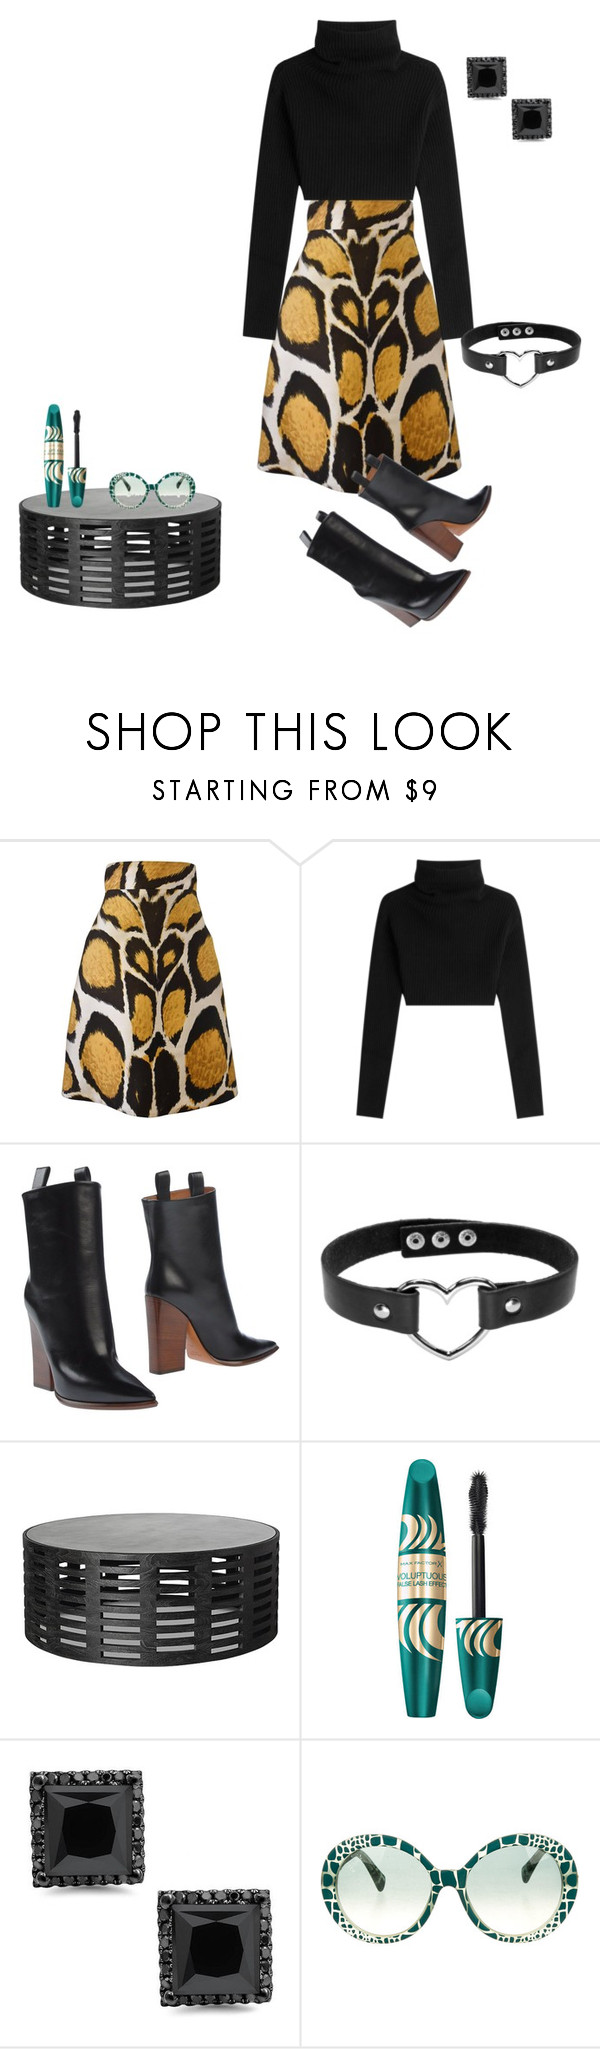 """Untitled #2693"" by ayse-sedetmen ❤ liked on Polyvore featuring Giles, Valentino, CÉLINE, Max Factor and Emilio Pucci"